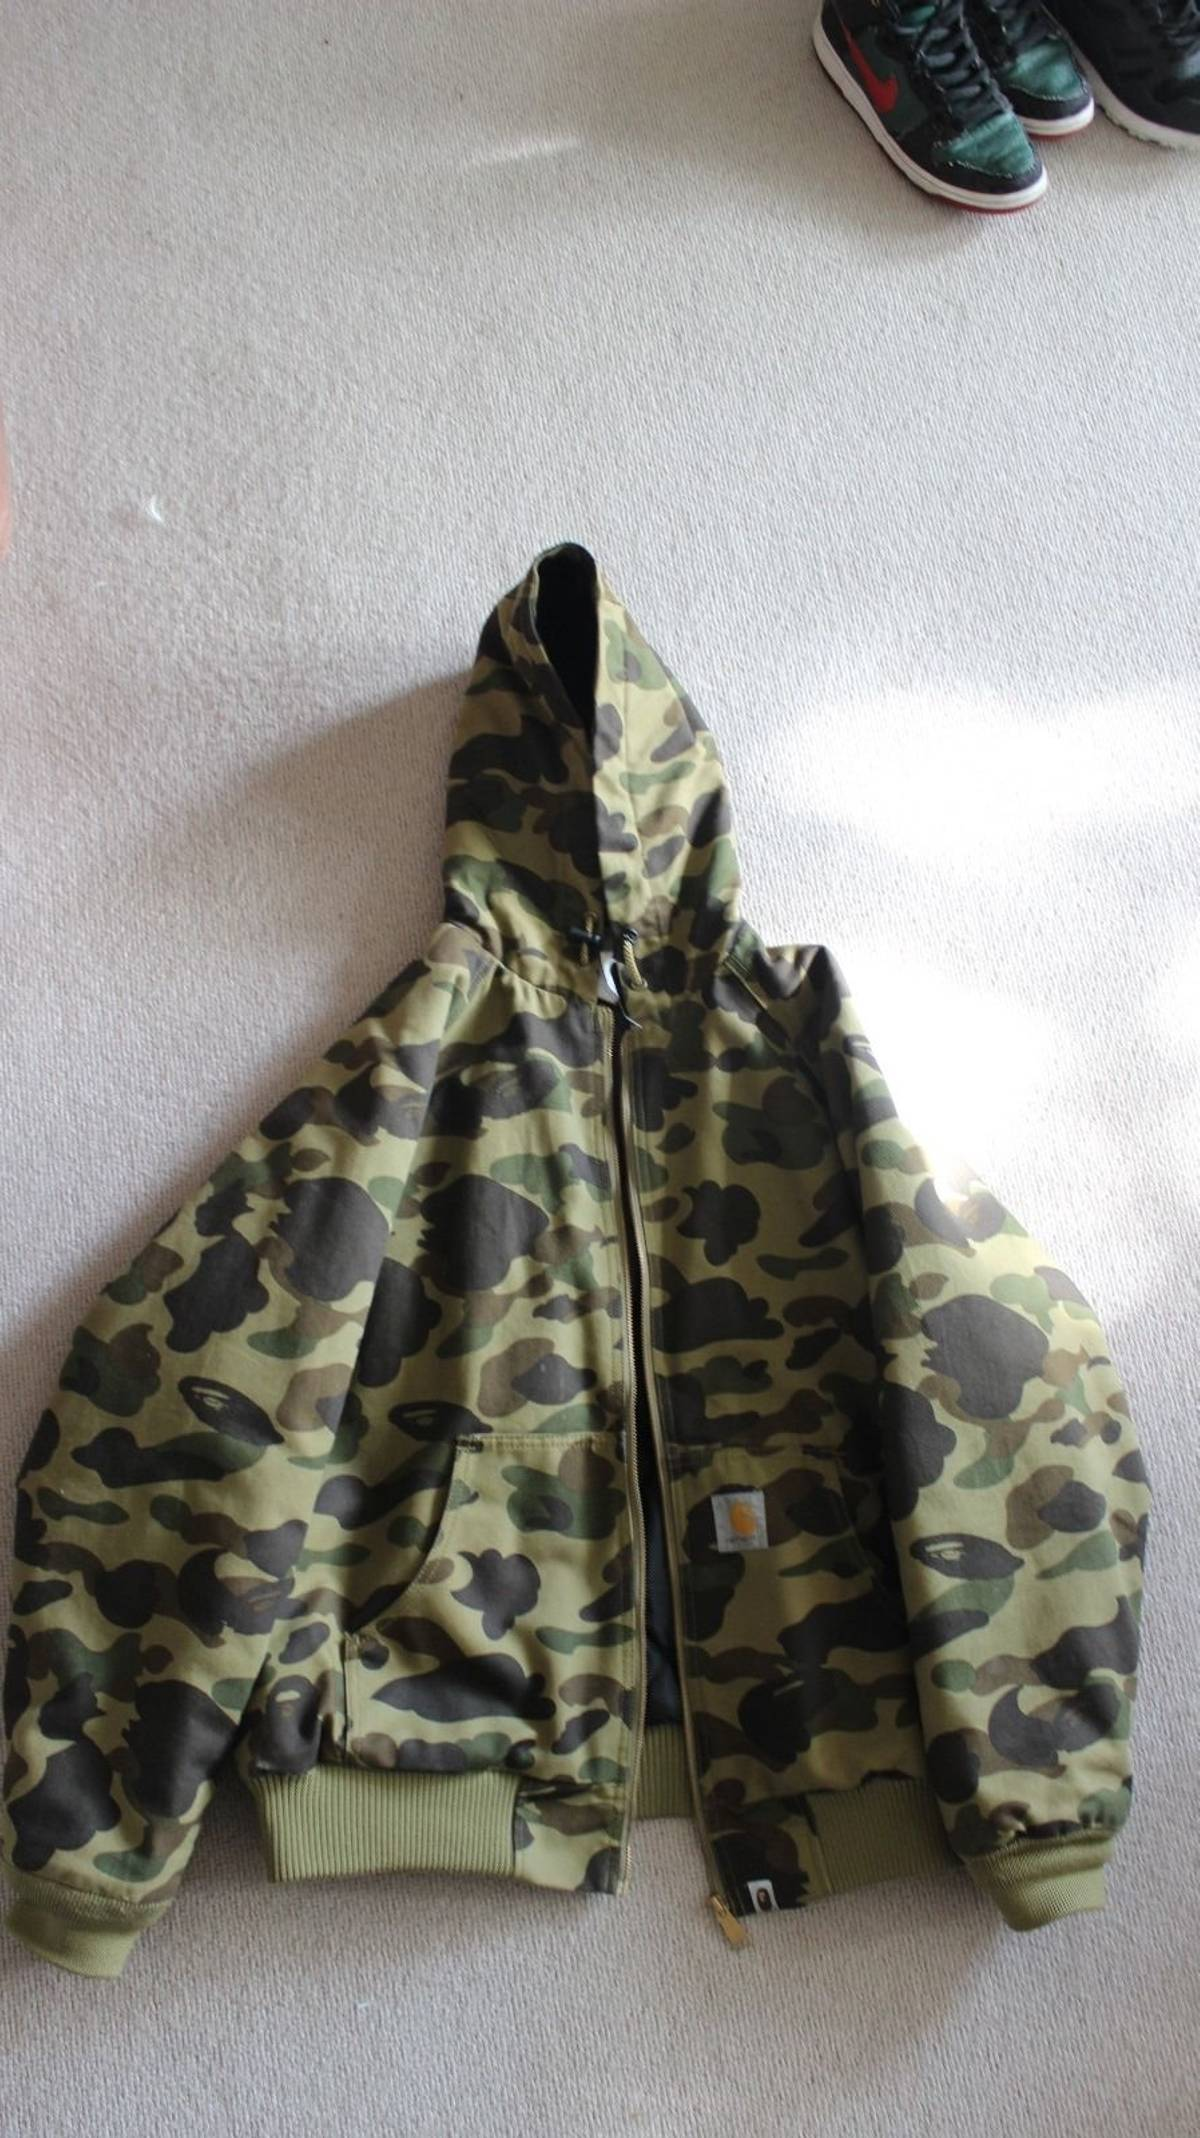 7e7361c9711c Bape Rare Bathing Ape X Carhartt Active Jacket - Japan Only 2006 1 300  Limited Release